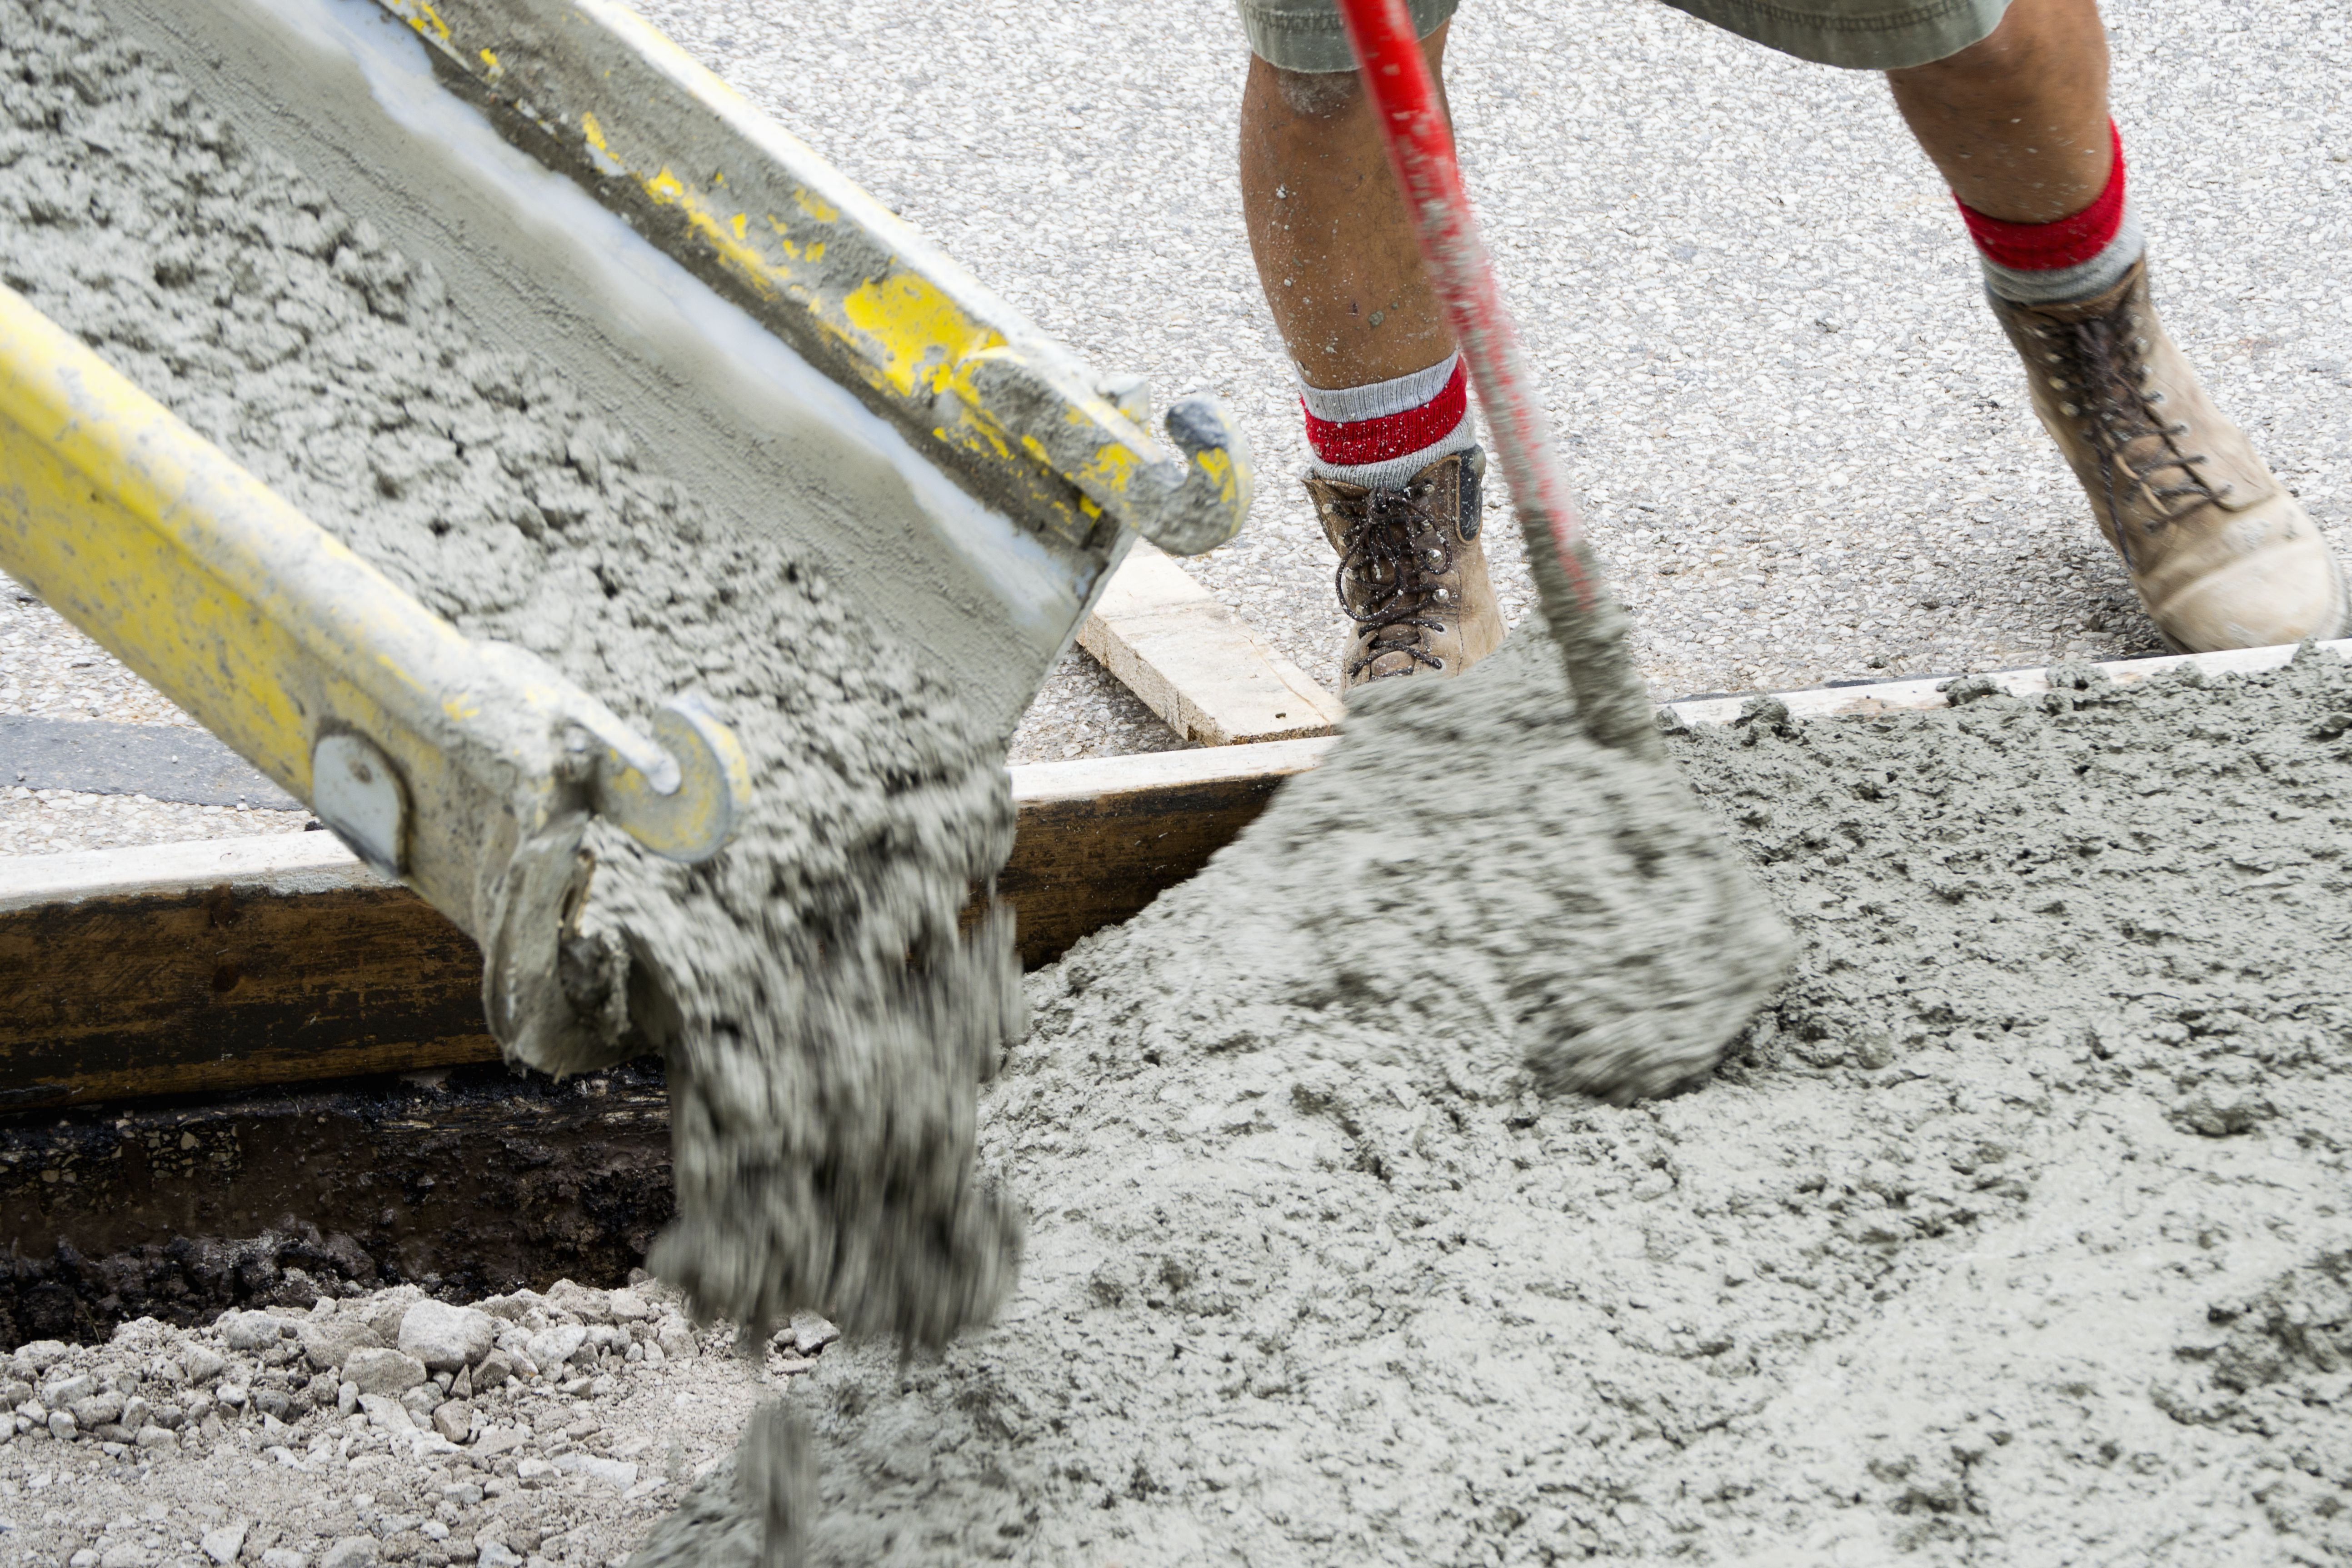 learn how to pour concrete in hot weather